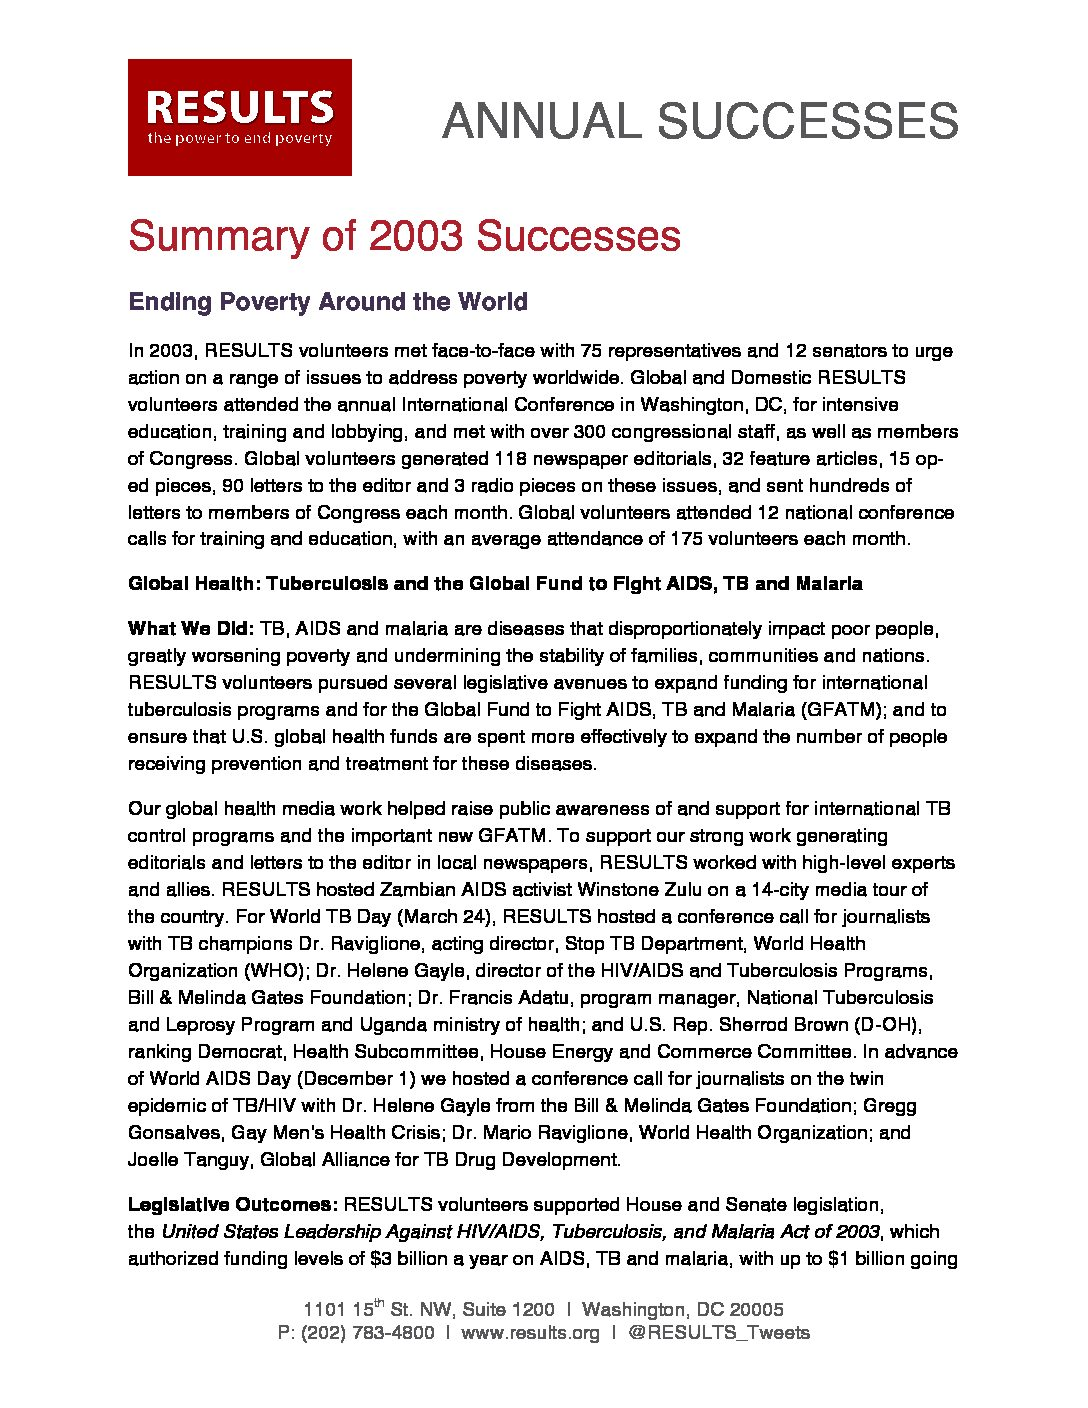 Annual Successes 2003